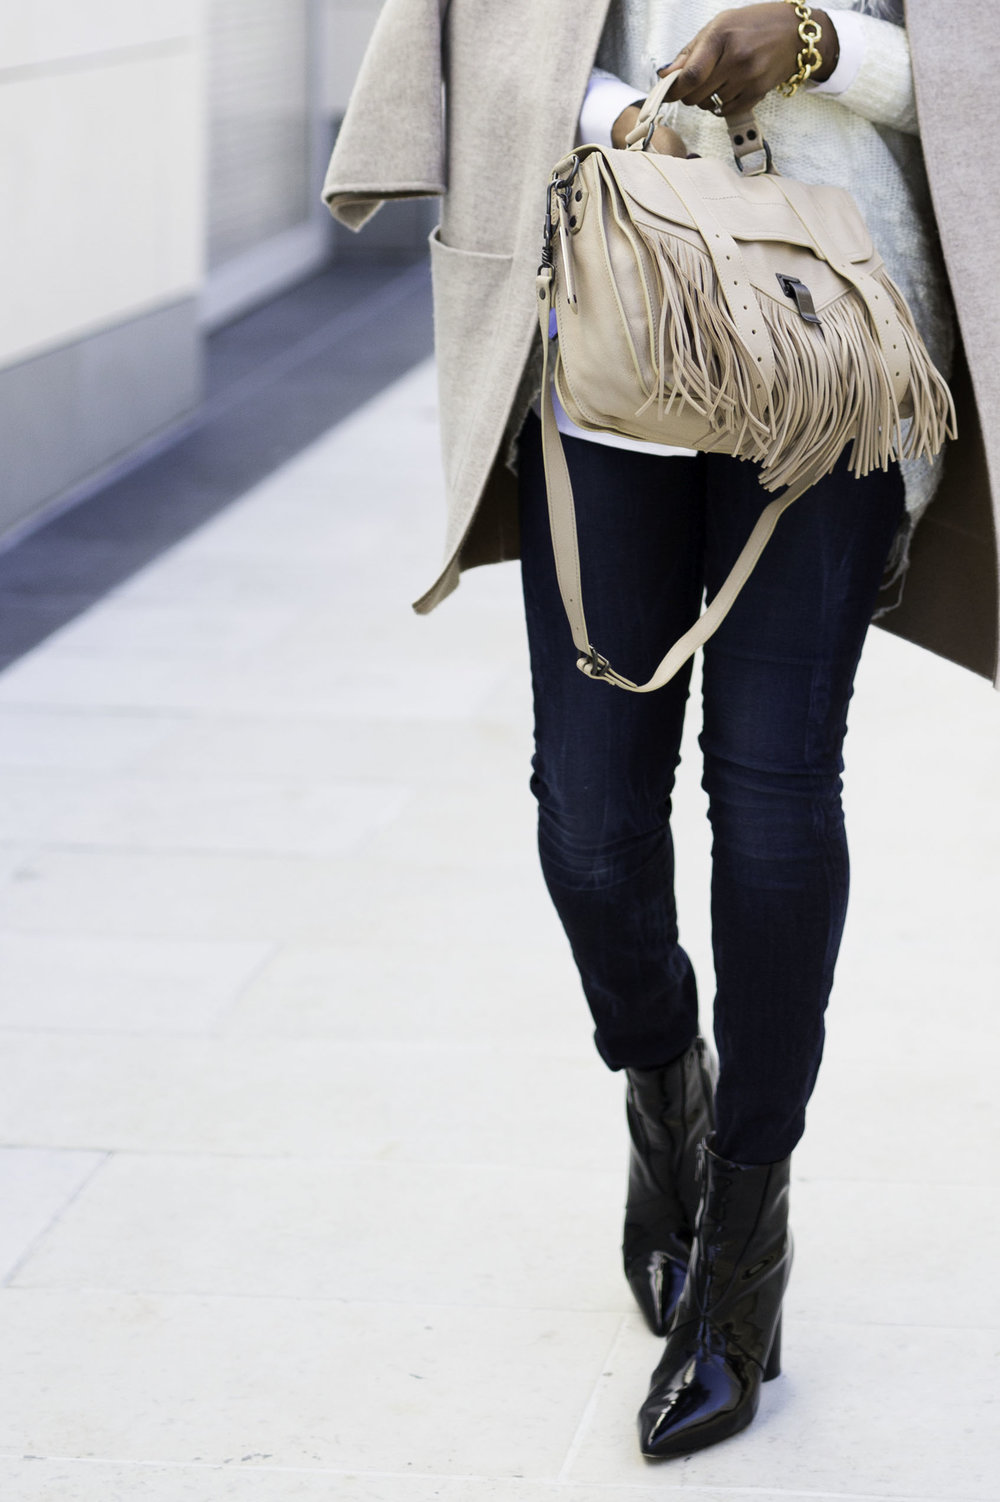 FRINGE BAG AND BLUE JEANS.jpg